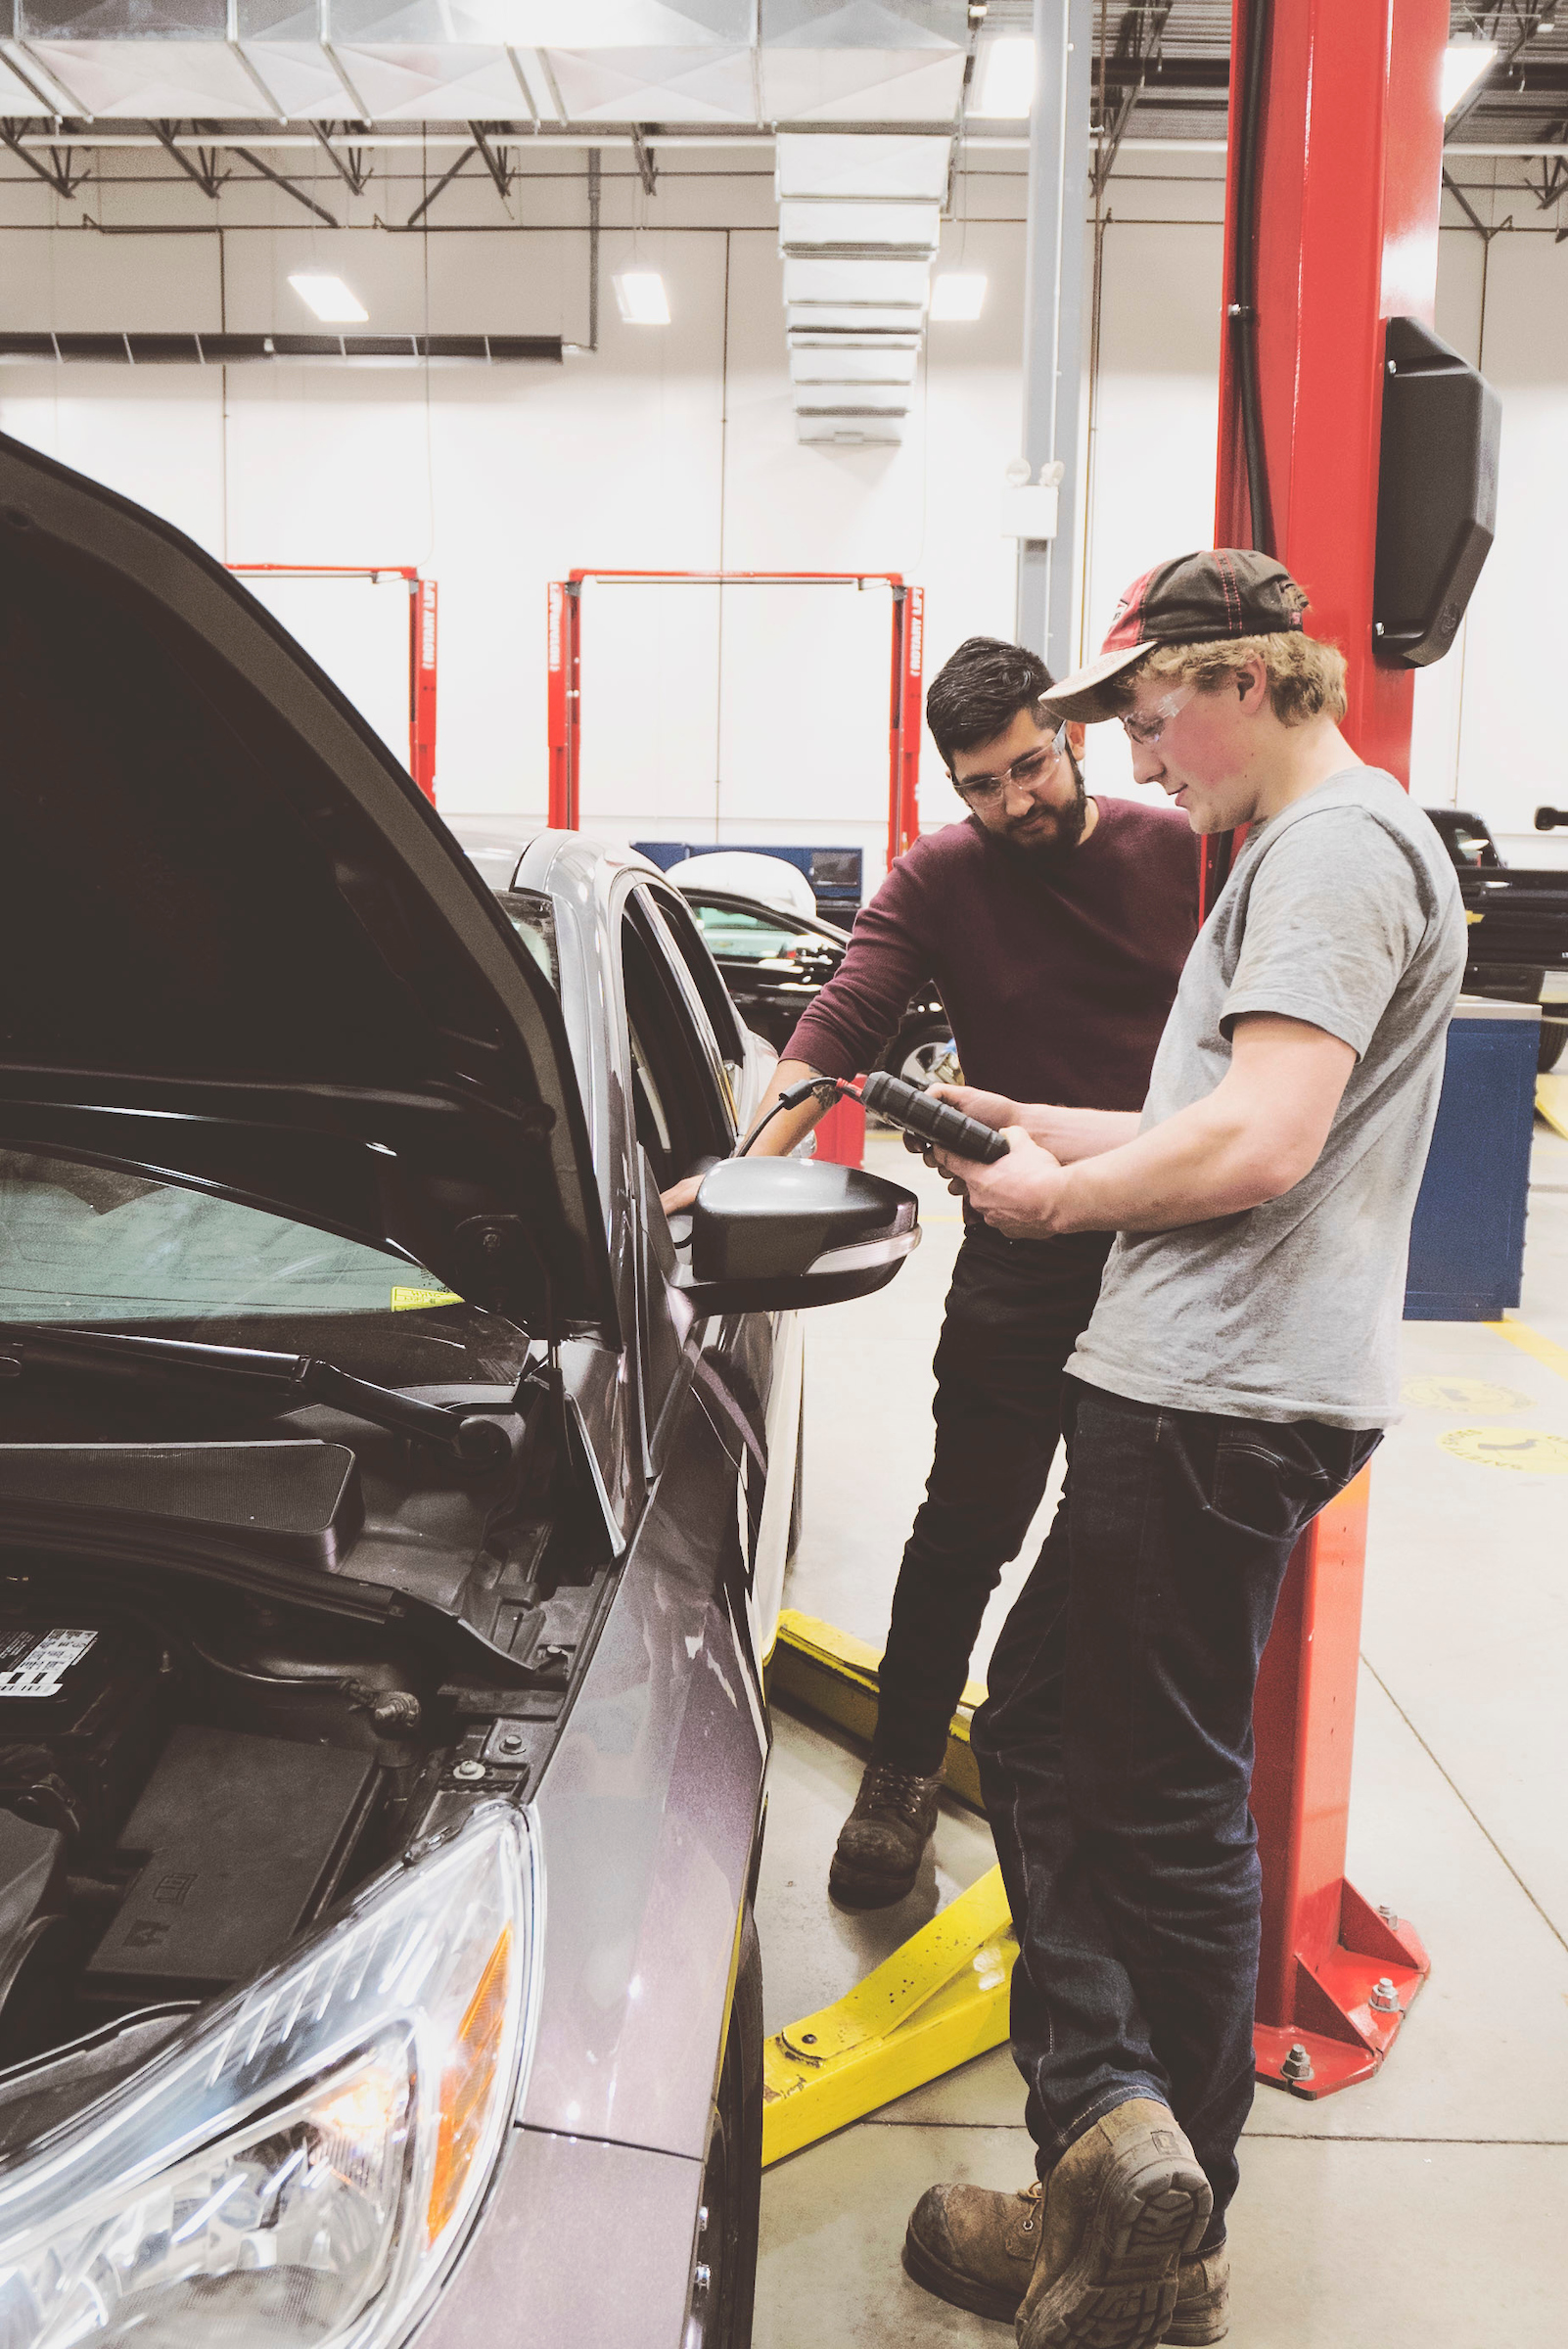 Two students stand beside a car in an auto shop. They are looking at a hand-held computer connected to the car.